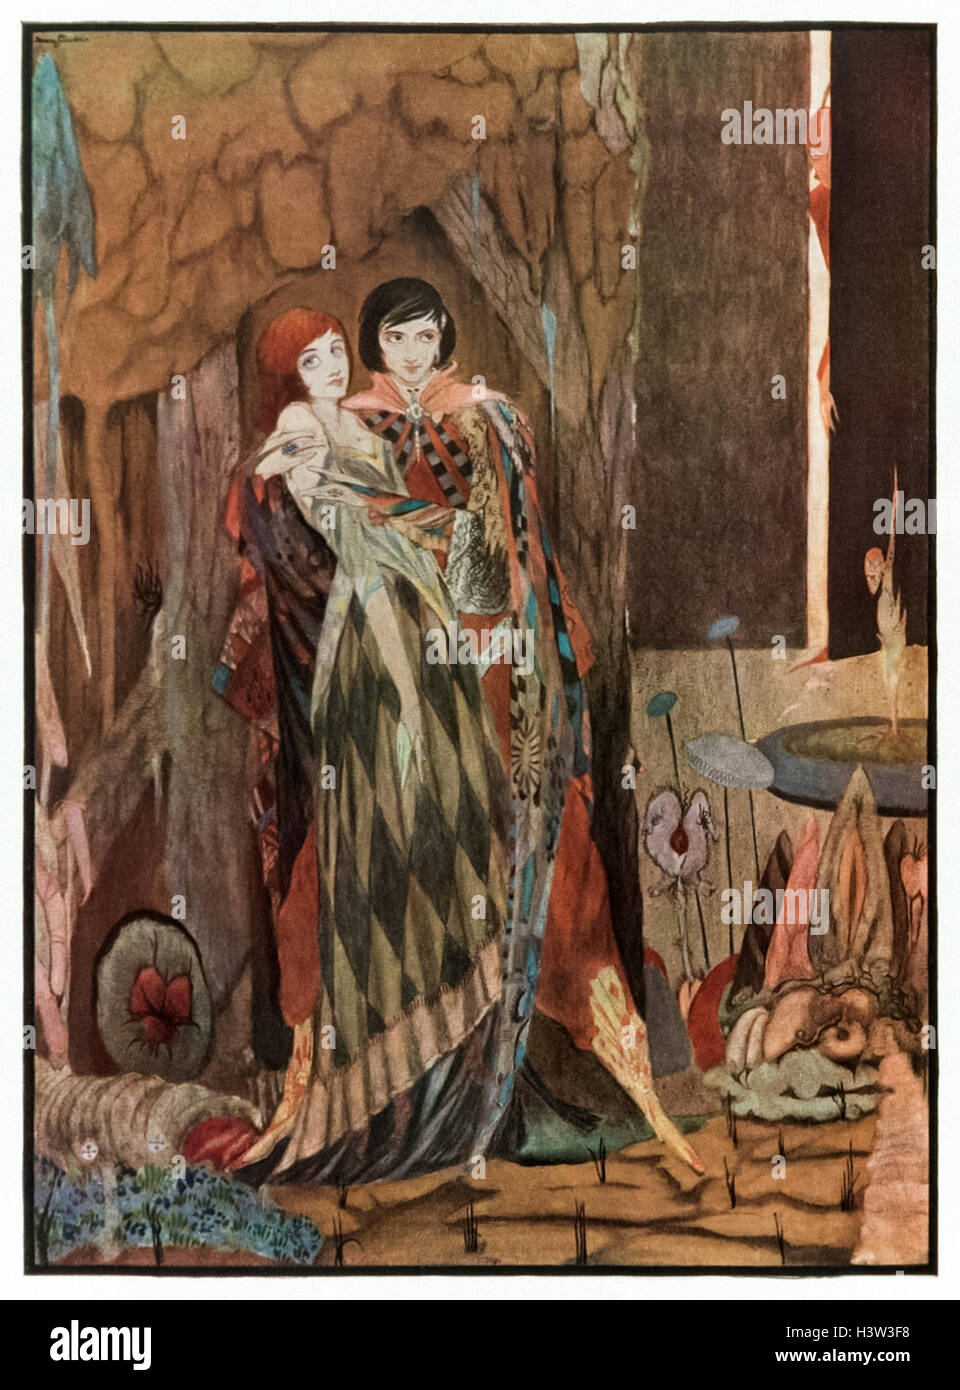 """""""Dearest and best, with my whole heart I love thee."""" Frontispiece illustration from 'Faust by Goethe' by Harry Clarke - Stock Image"""